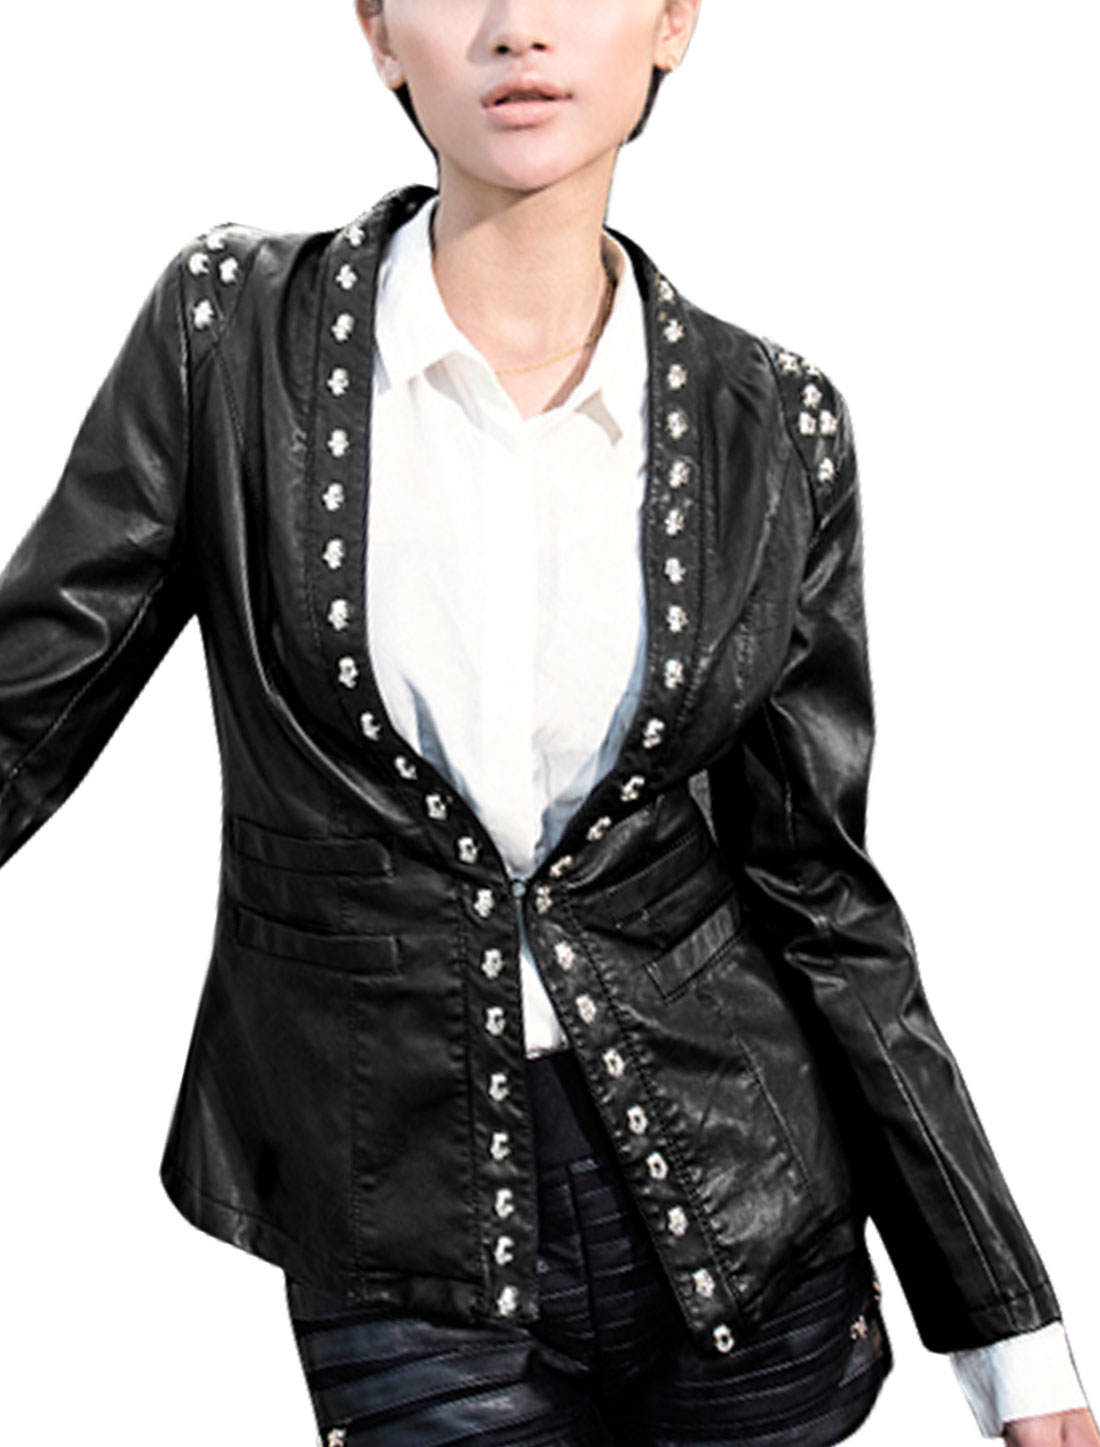 Women Studs Decor Hidden Hook Eye Closure Imitation Leather Jacket Black S